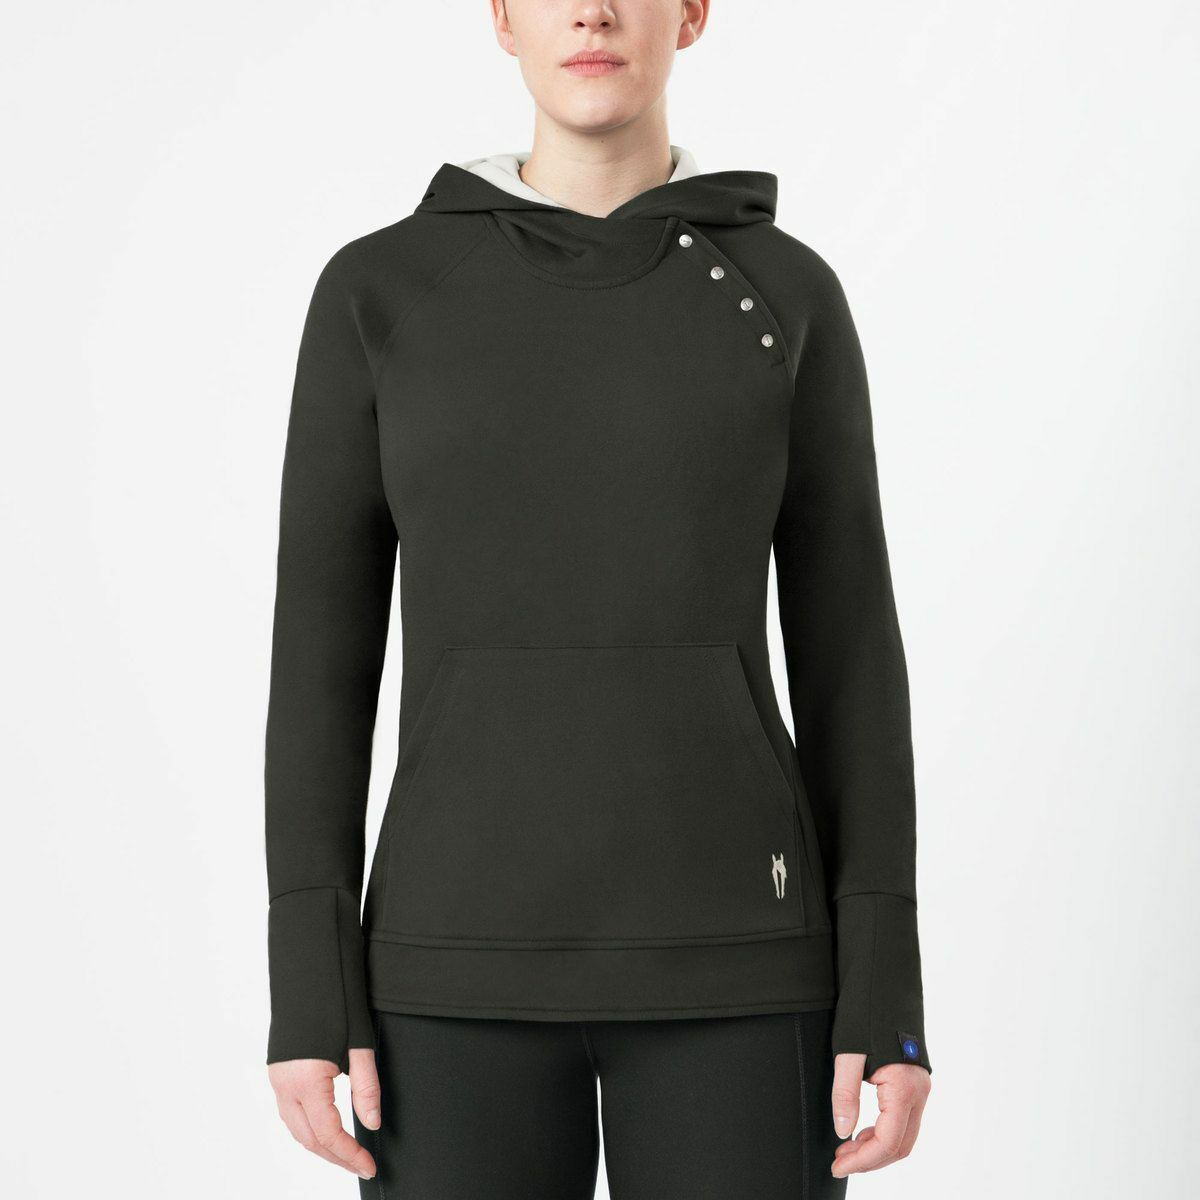 Irideon Himalayer Hoodie with Horizontal Thumbholes and TwoSided Fabric